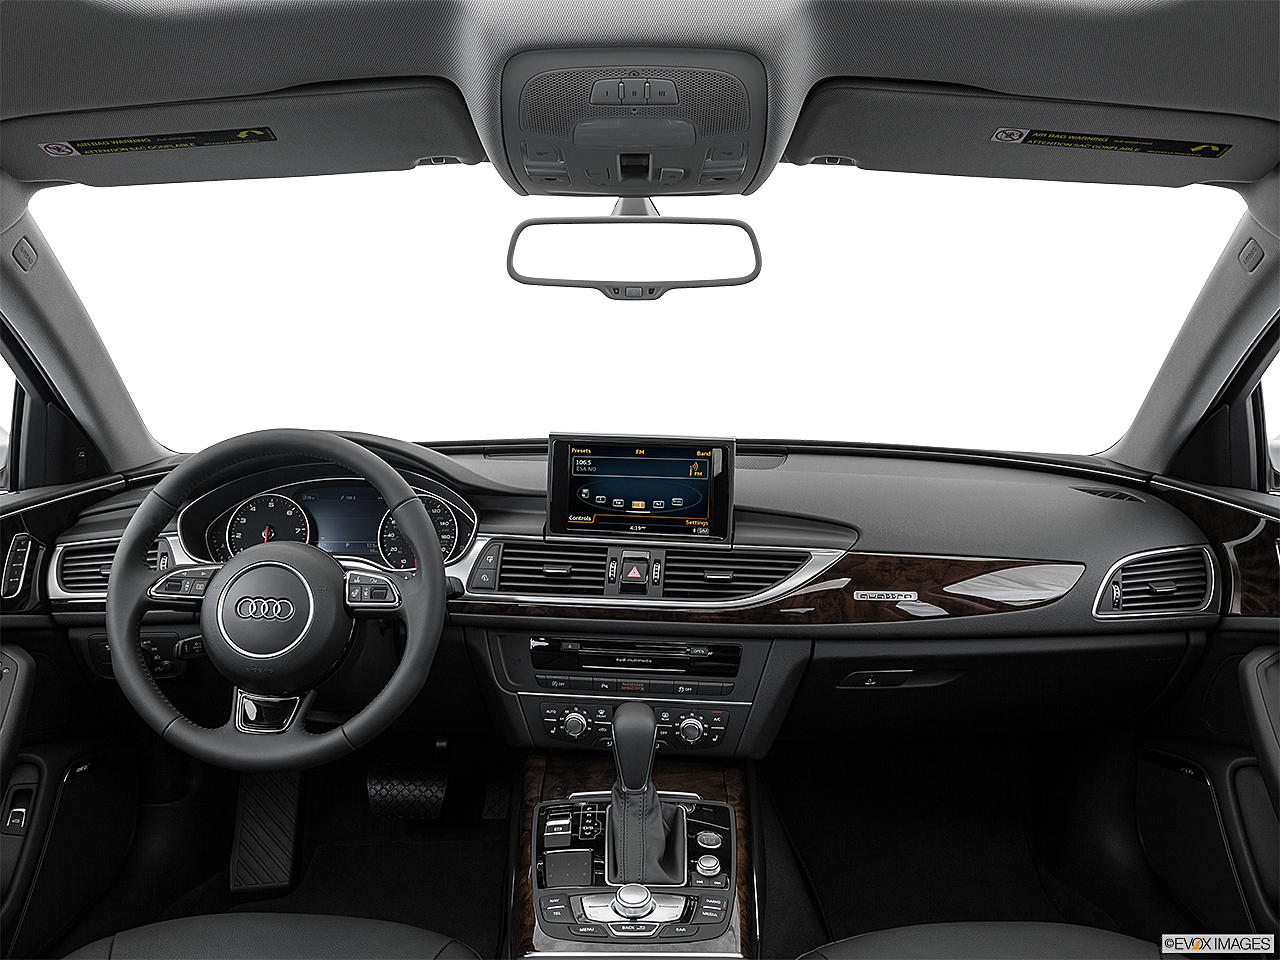 2016 Audi A6 Premium Plus, centered wide dash shot